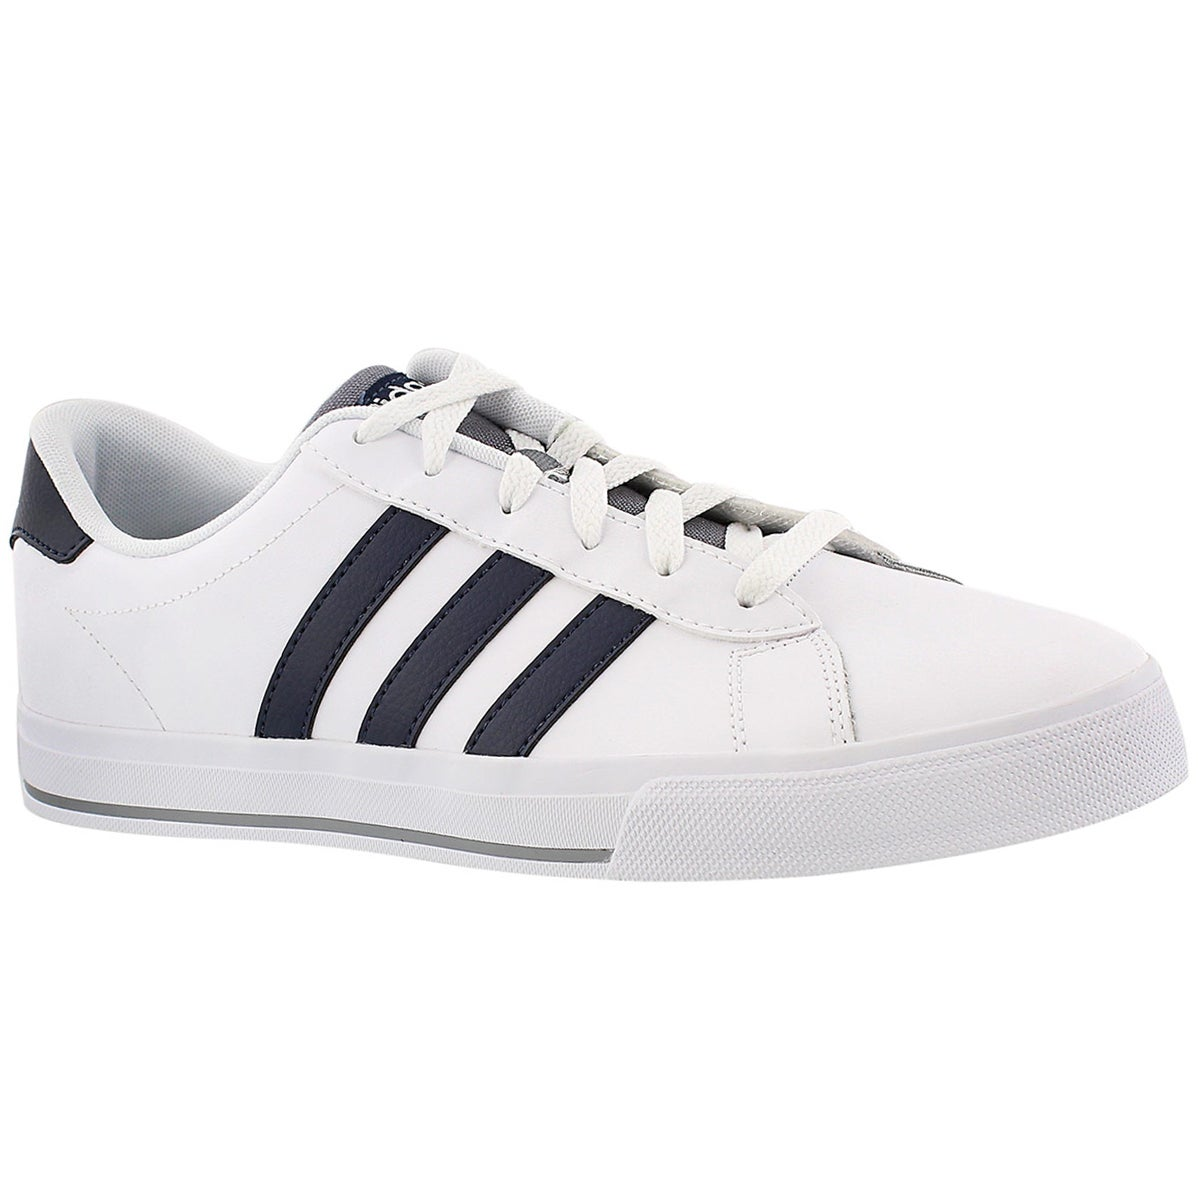 Mns Daily white/black lace up sneaker